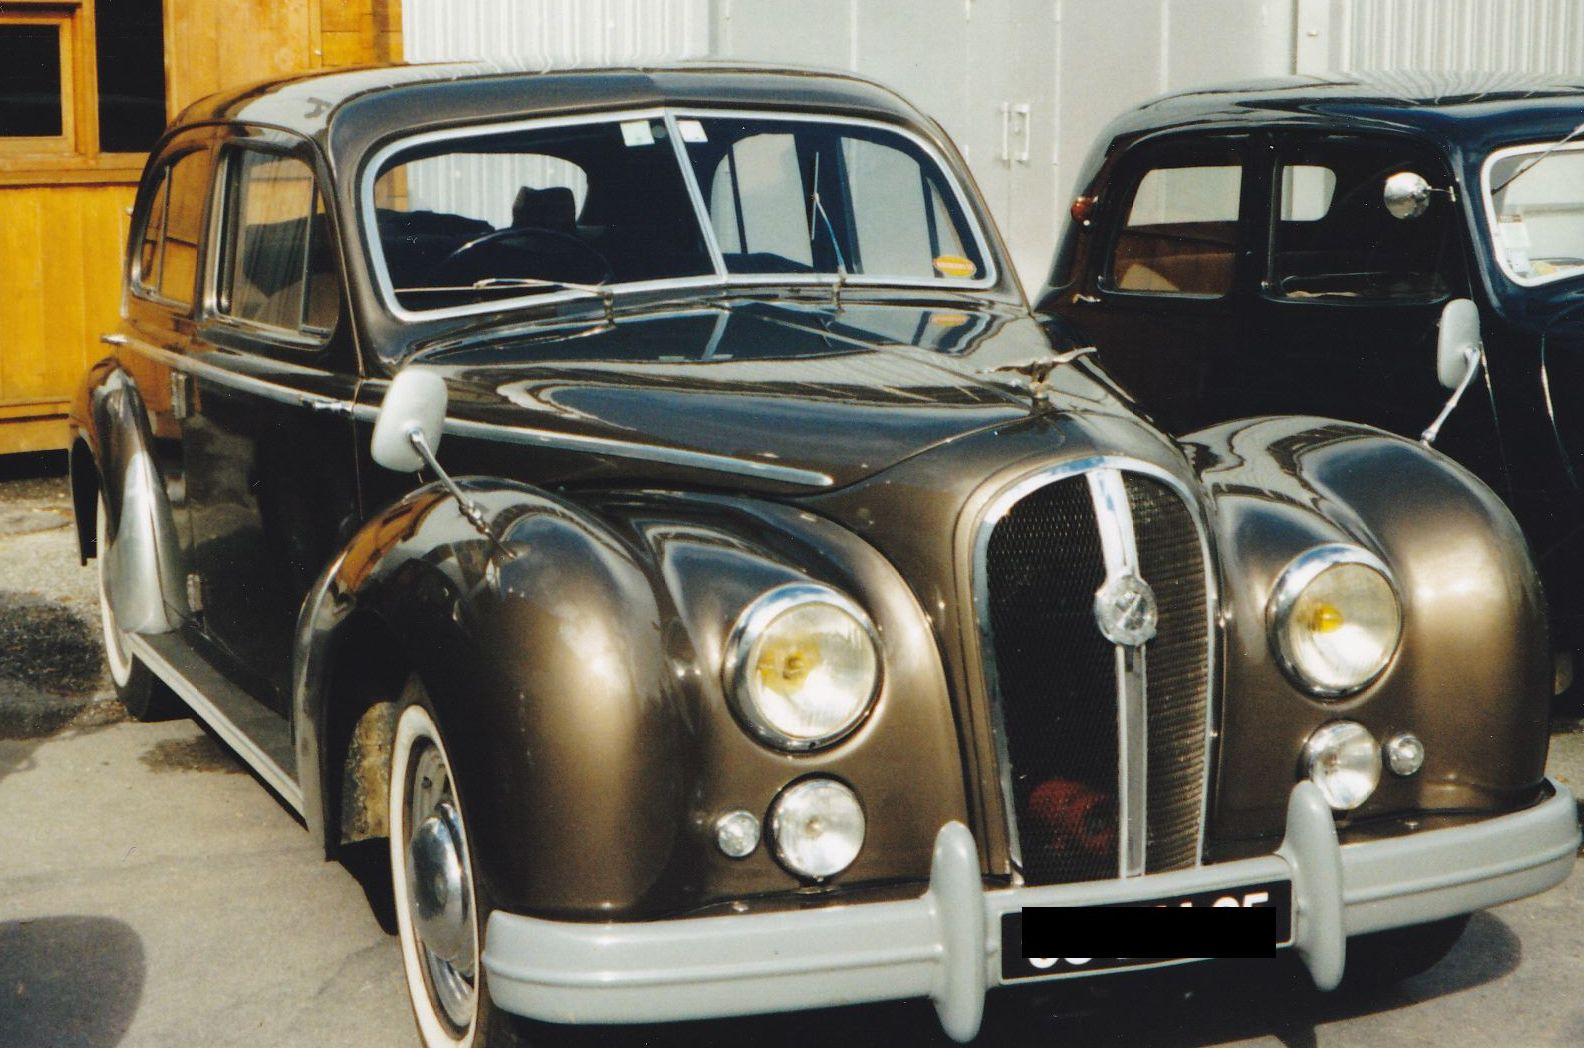 hotchkiss paris nice 1936 france voiture de luxe limousine hotchkiss france. Black Bedroom Furniture Sets. Home Design Ideas